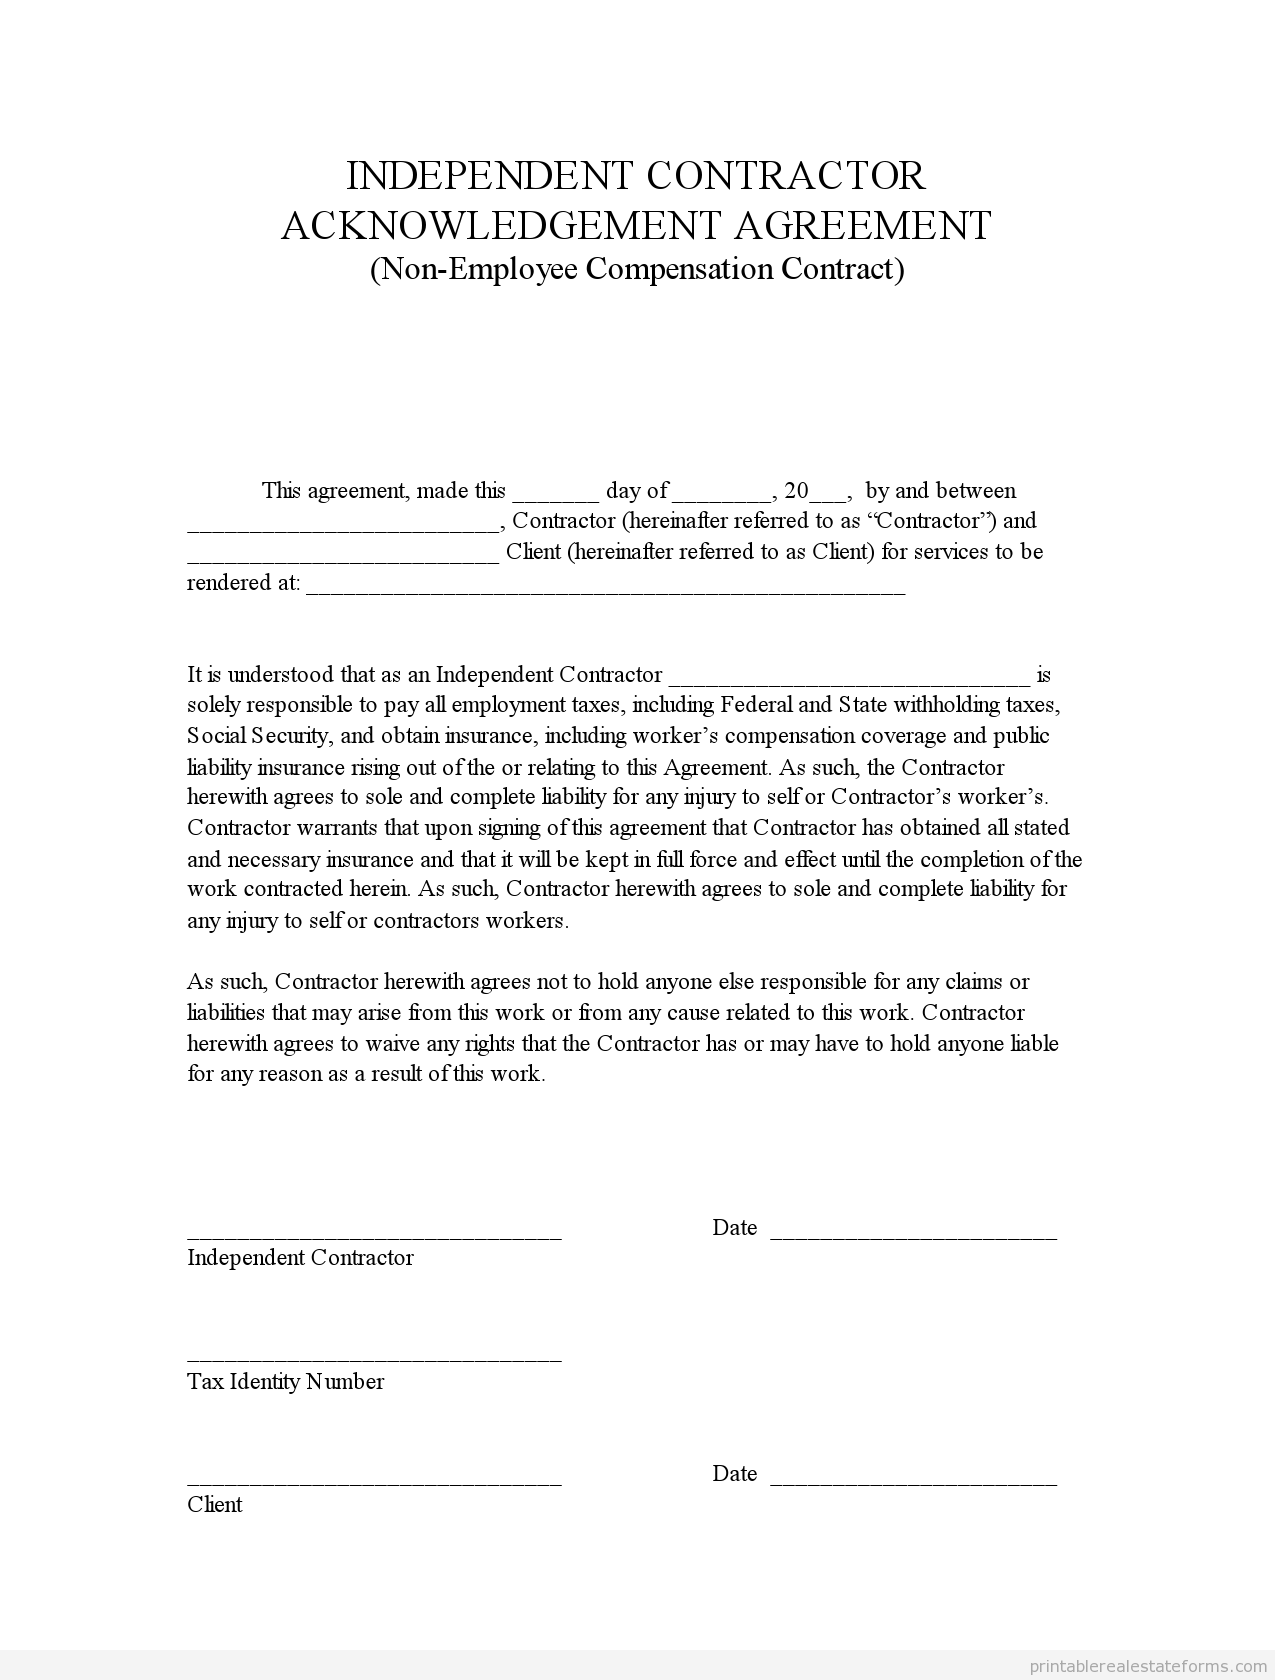 sample printable indep contractor acknowledgement agreement form